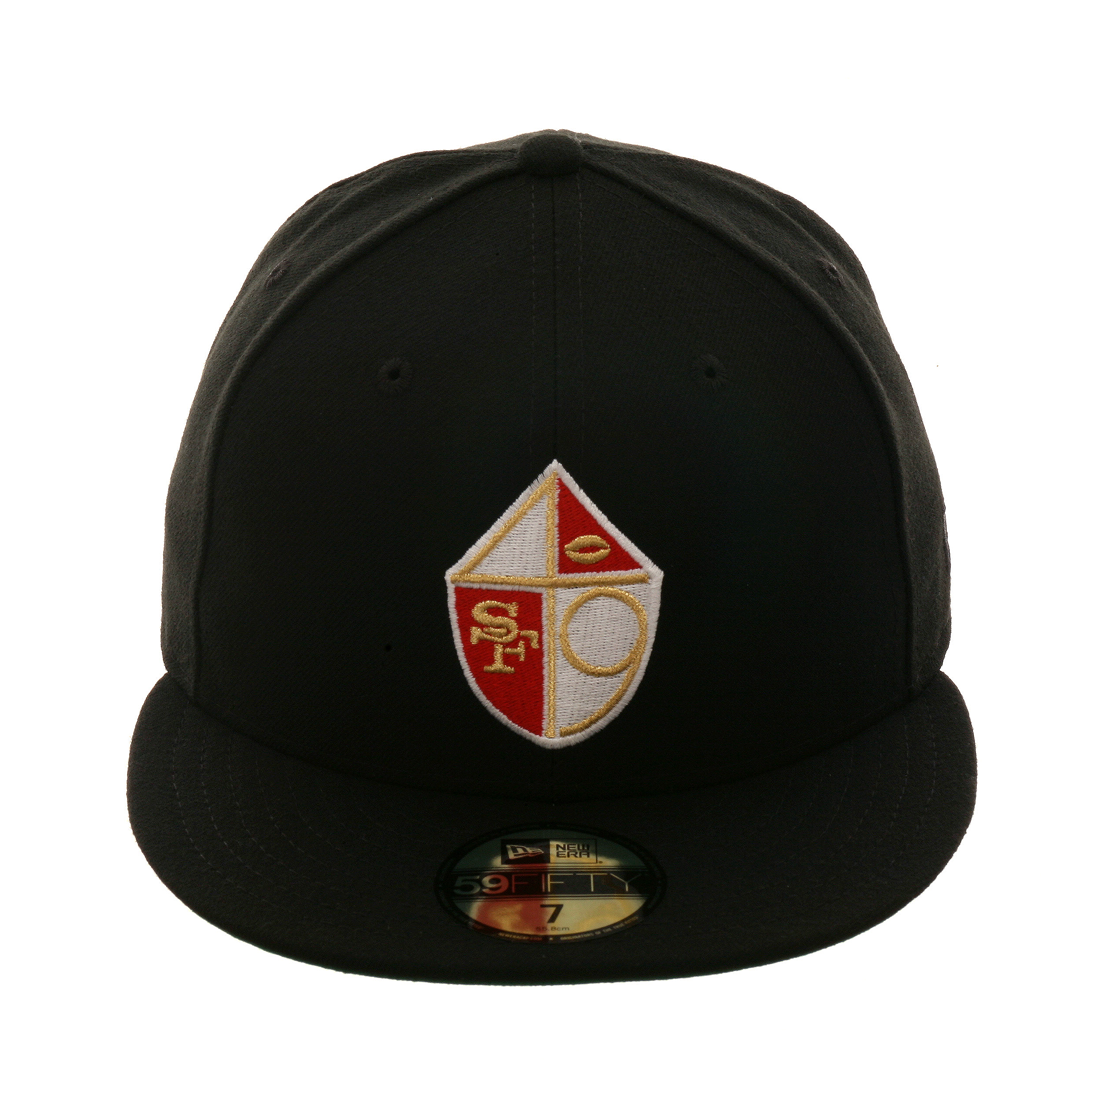 online store 10d57 dbcc1 Exclusive New Era 59Fifty San Francisco 49ers Shield Hat - Black,  39.99